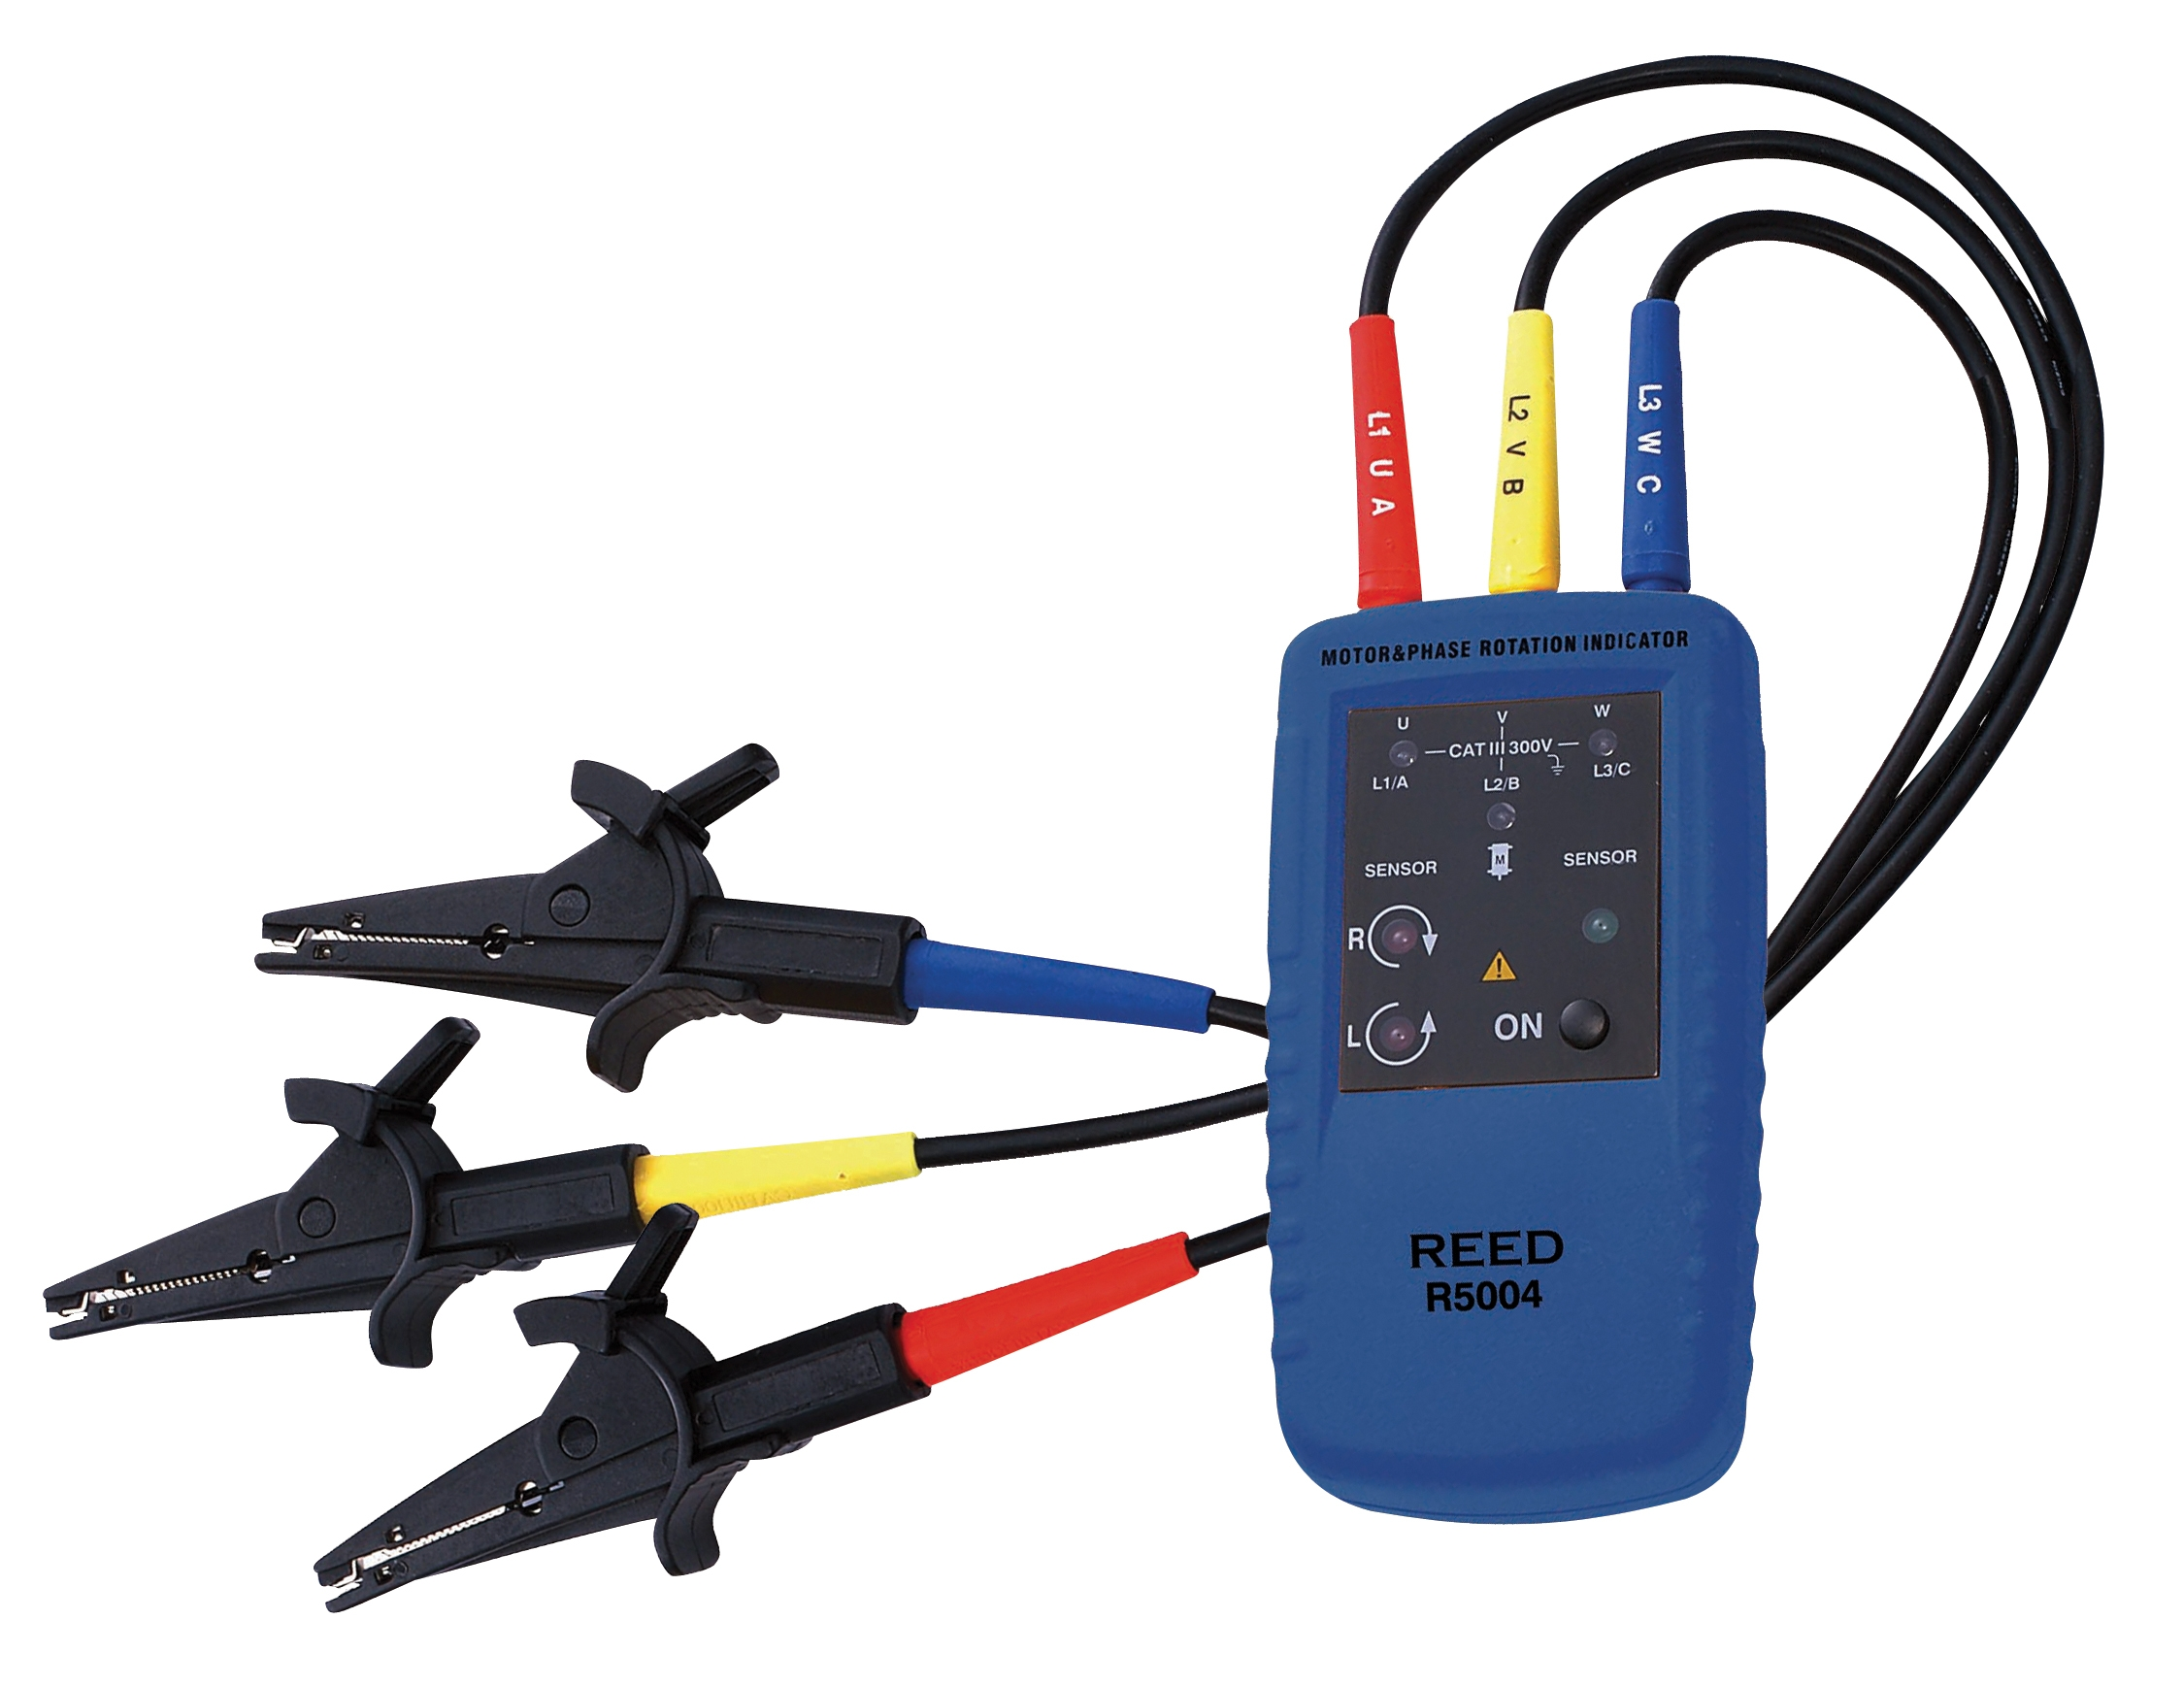 Reed Instruments R5004 3-Phase Sequence and Motor Rotation Tester